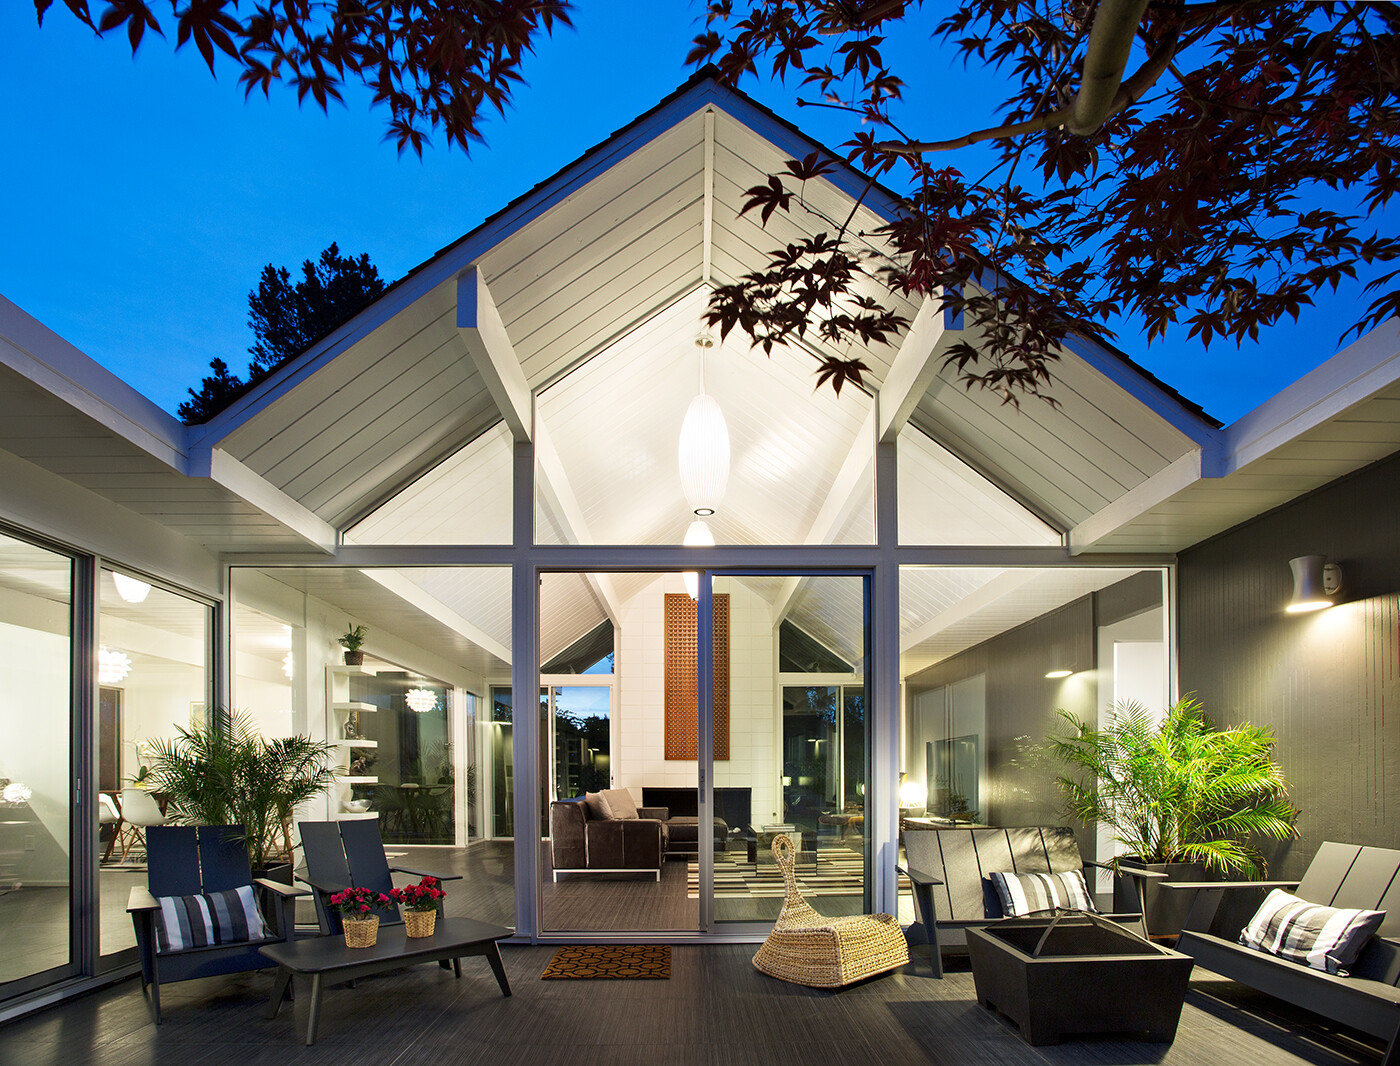 Home Plans: Eichler House Modernized By Klopf Architecture